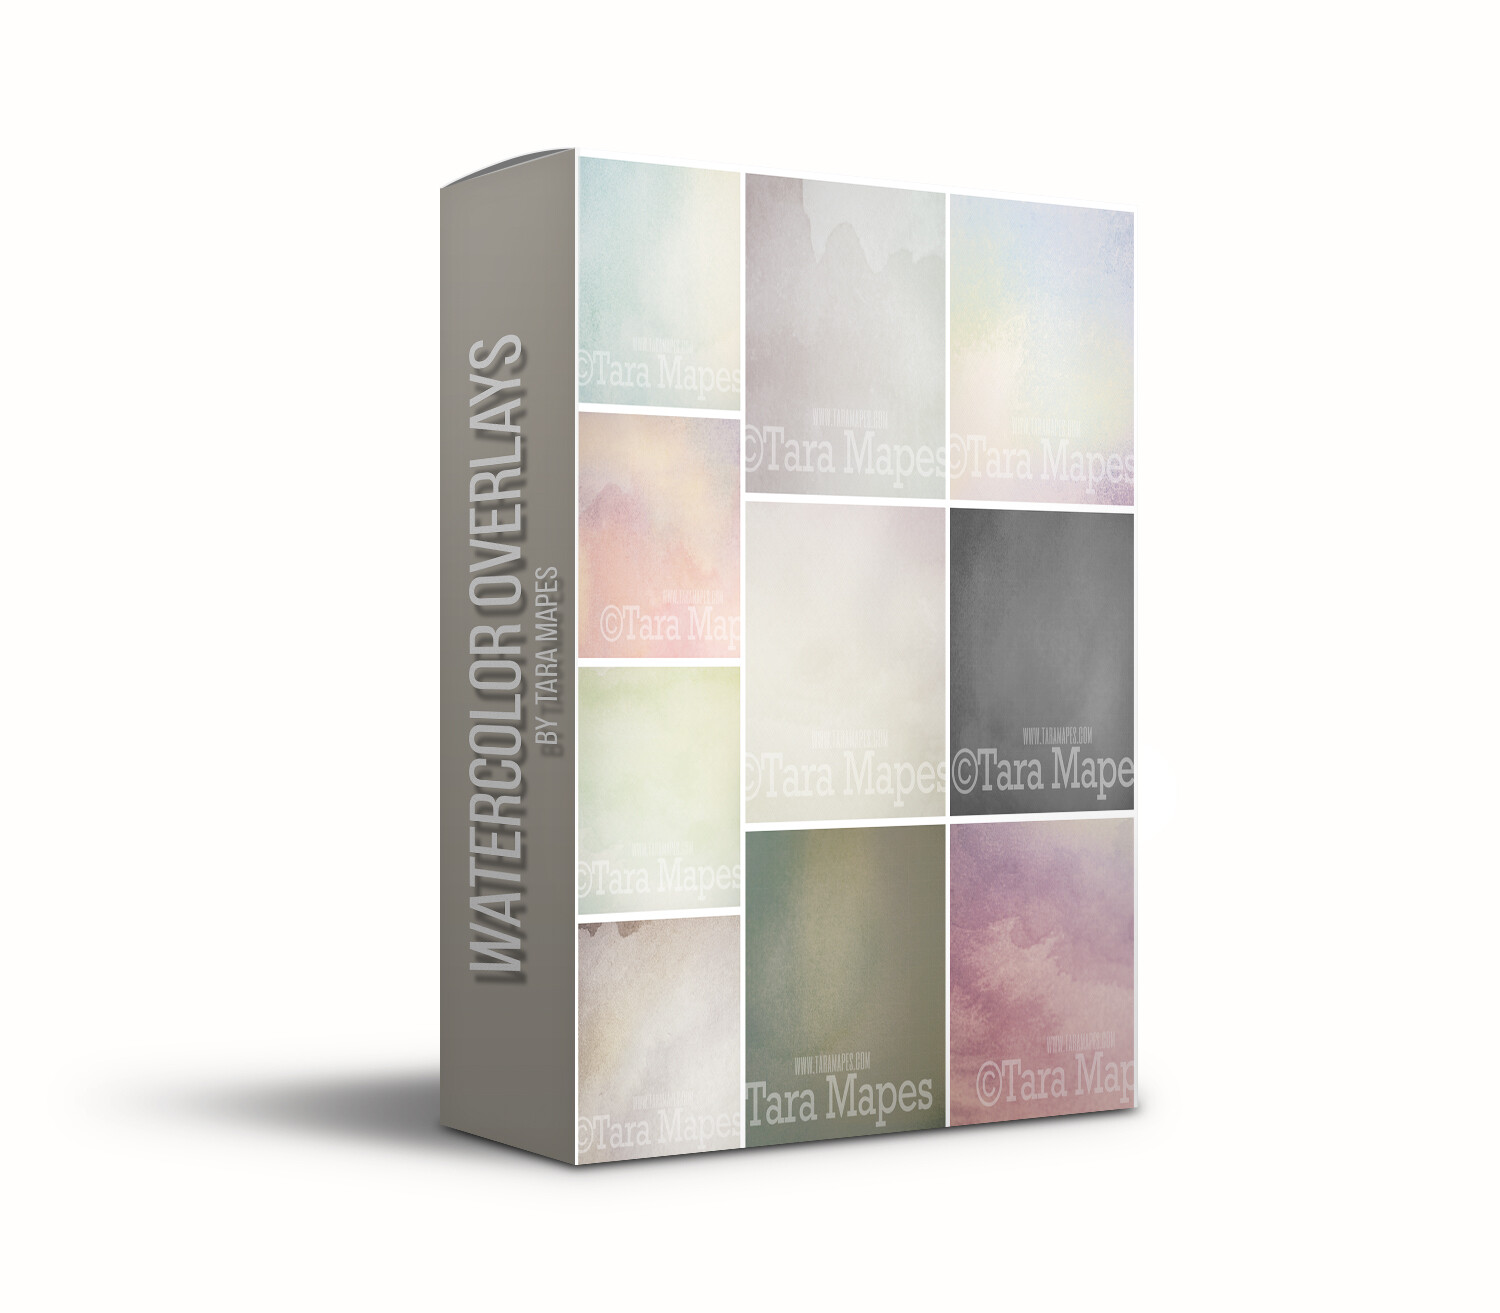 Watercolor Overlays - 10 pack of Watercolor Overlays - Texture overlays for Fine Art